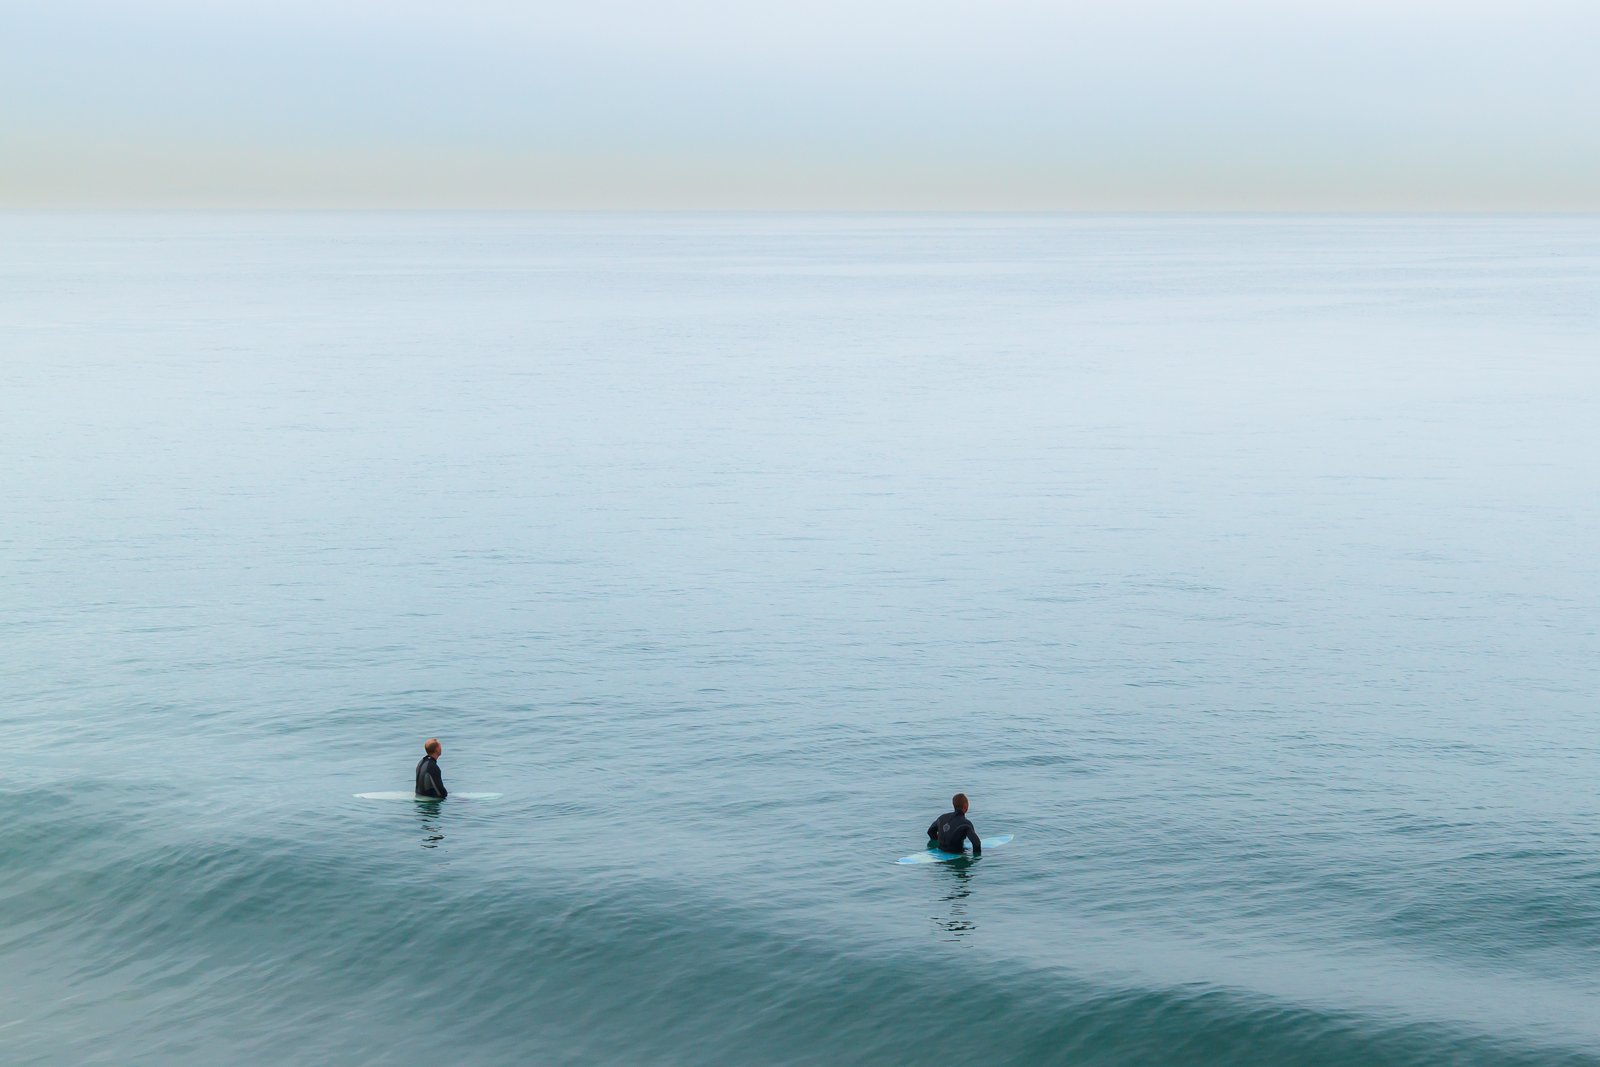 This image was featured on Salt & Water Magazine's Daily Journal and Instagram page:  http://instagram.com/p/vTKXC-tk2V/